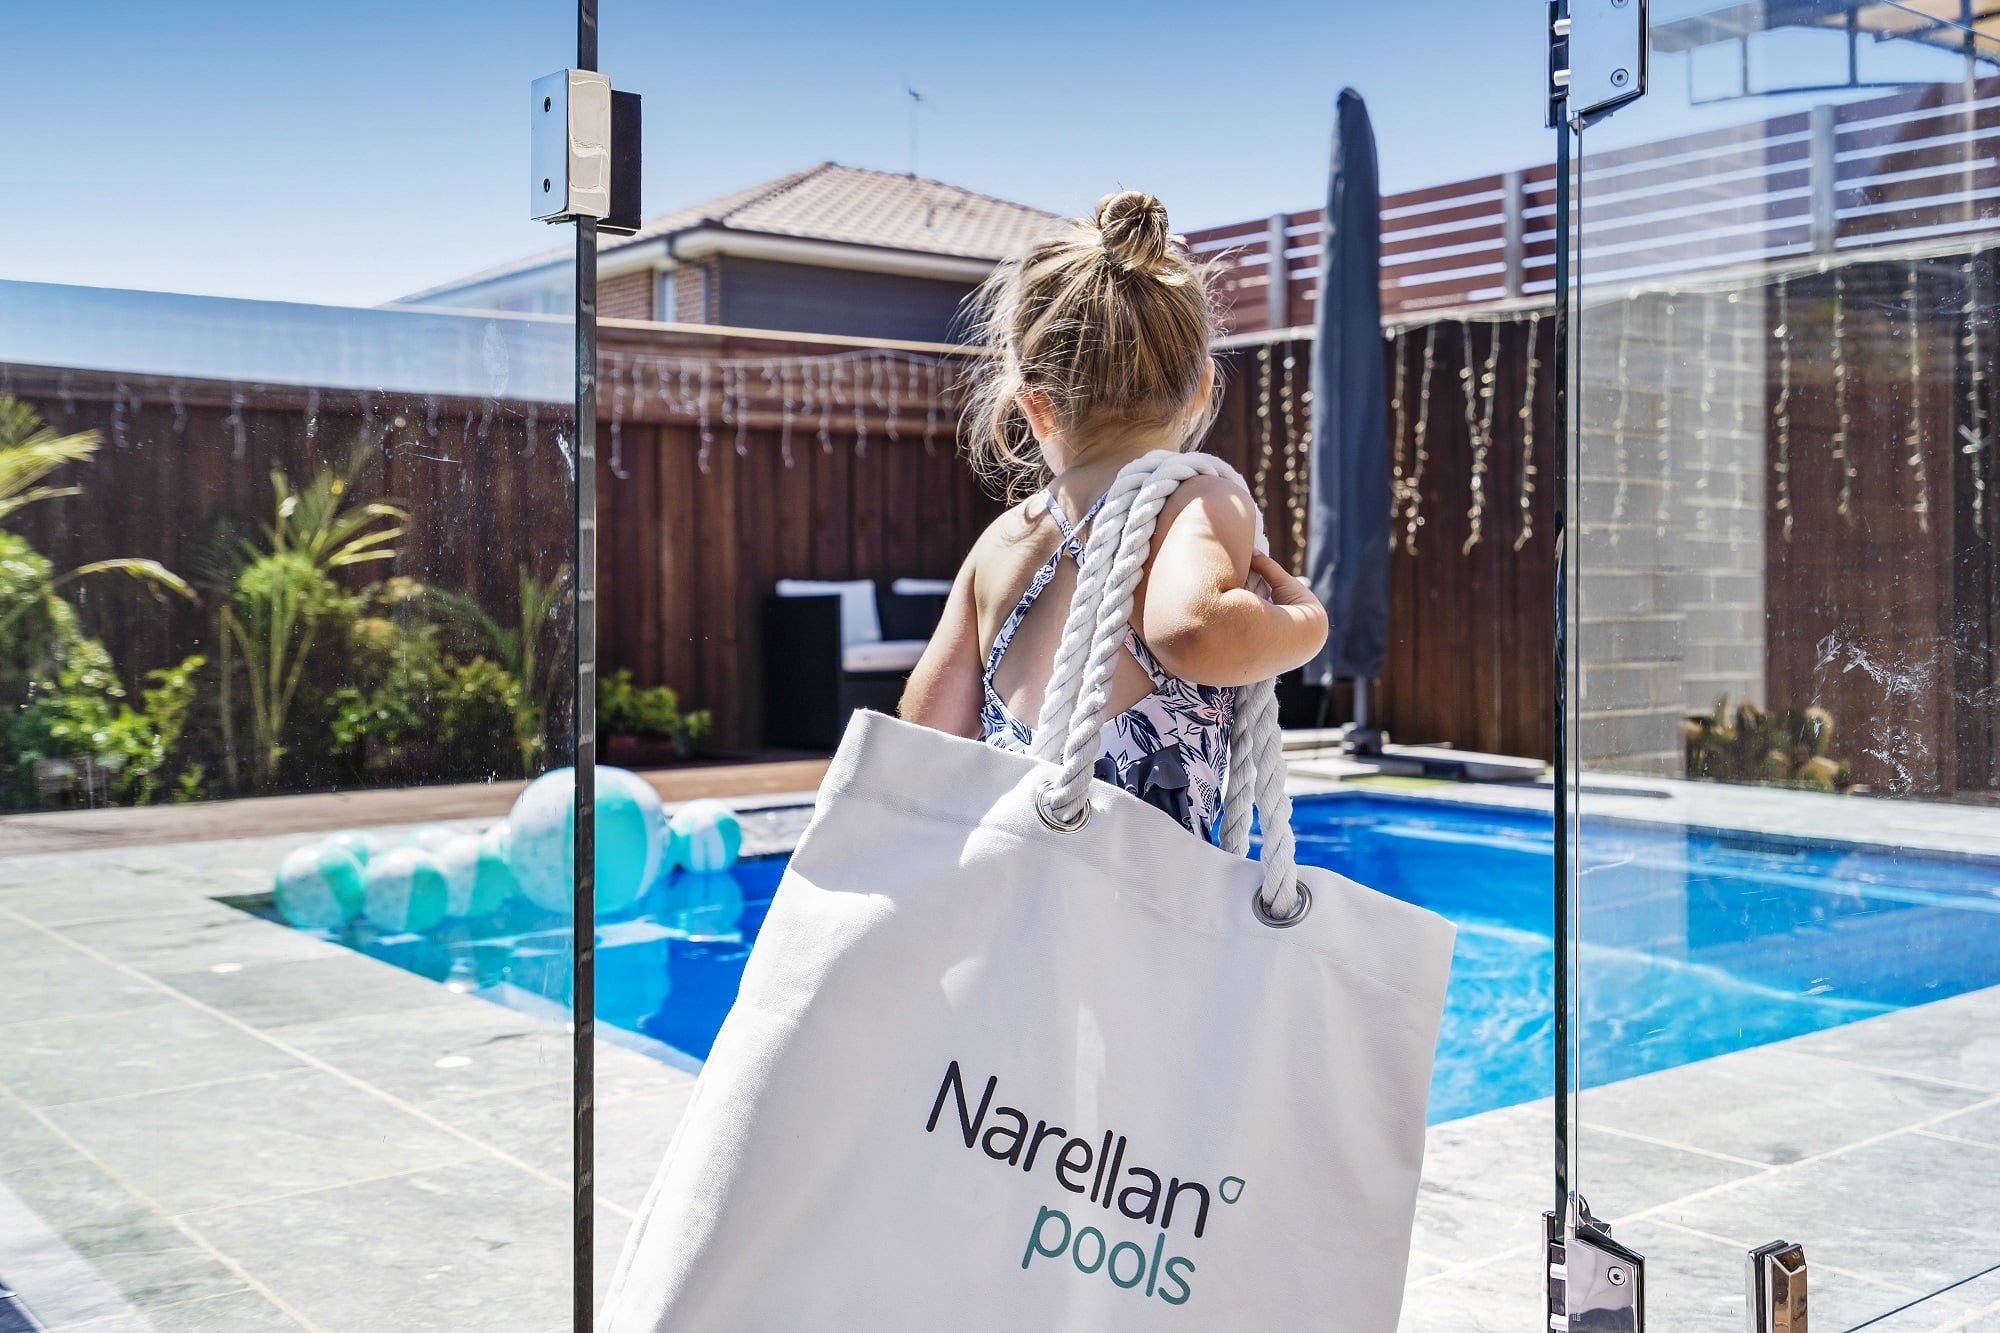 Swimming Pool and Kids - Narellan Pools